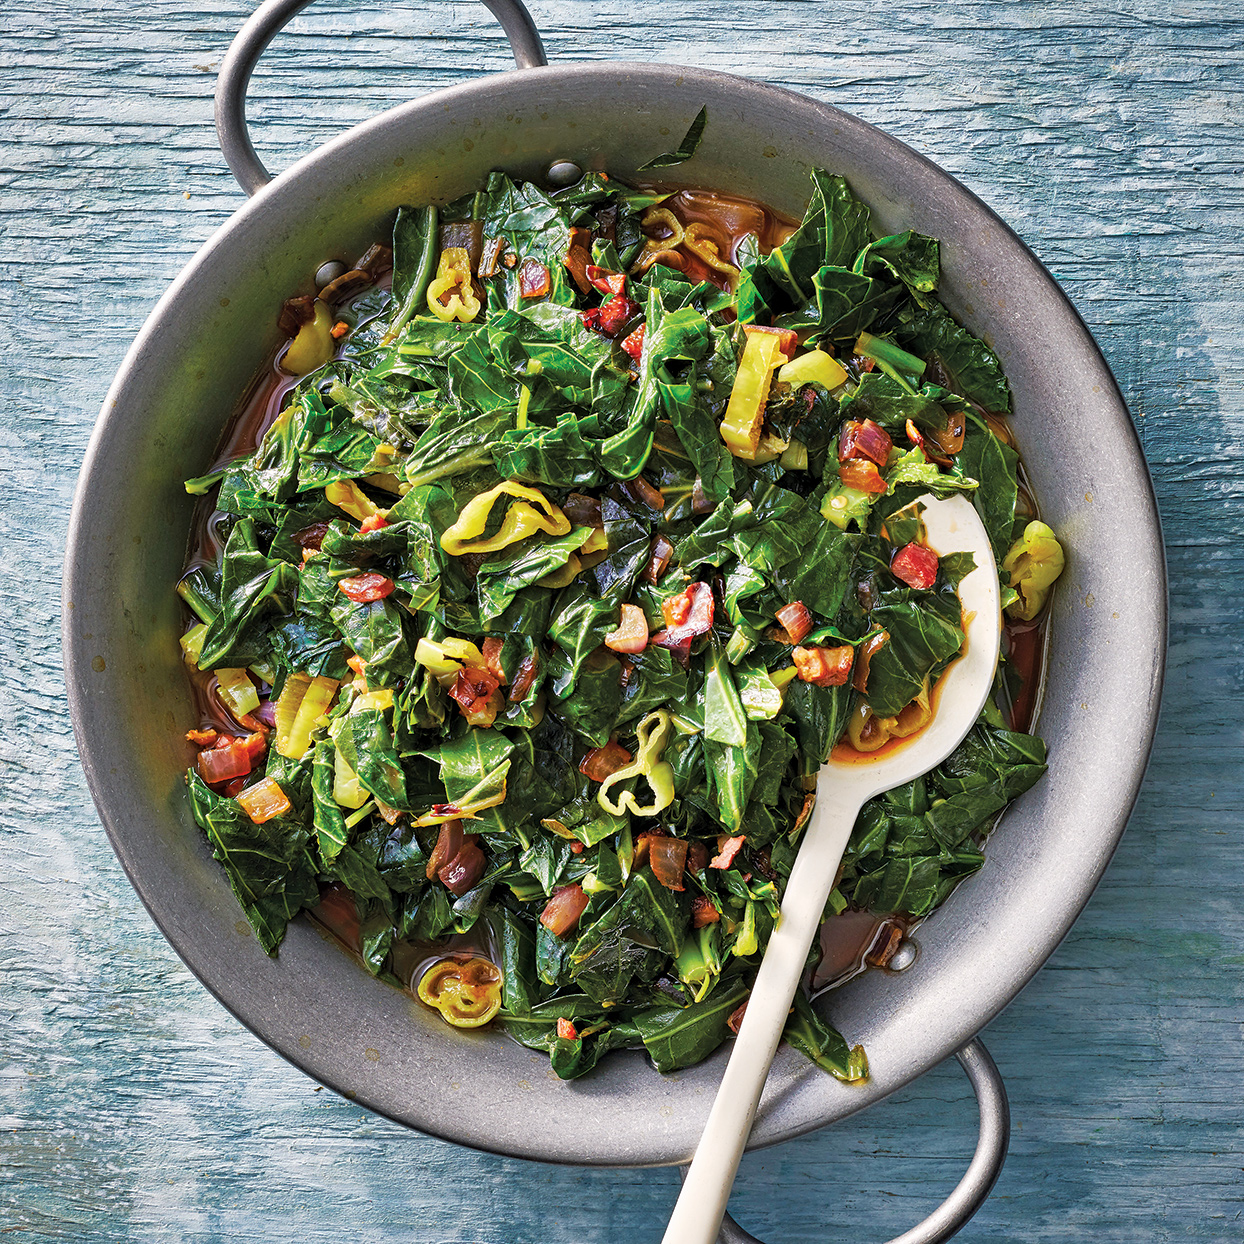 Collard greens have large, dark green leaves that are dense with vitamins, calcium and fiber. The briny pepperoncini and salty pancetta add enough brightness to this dish to balance the collards' vegetal flavor. These slow-cooker collard greens pair perfectly with braised meat or barbecue.